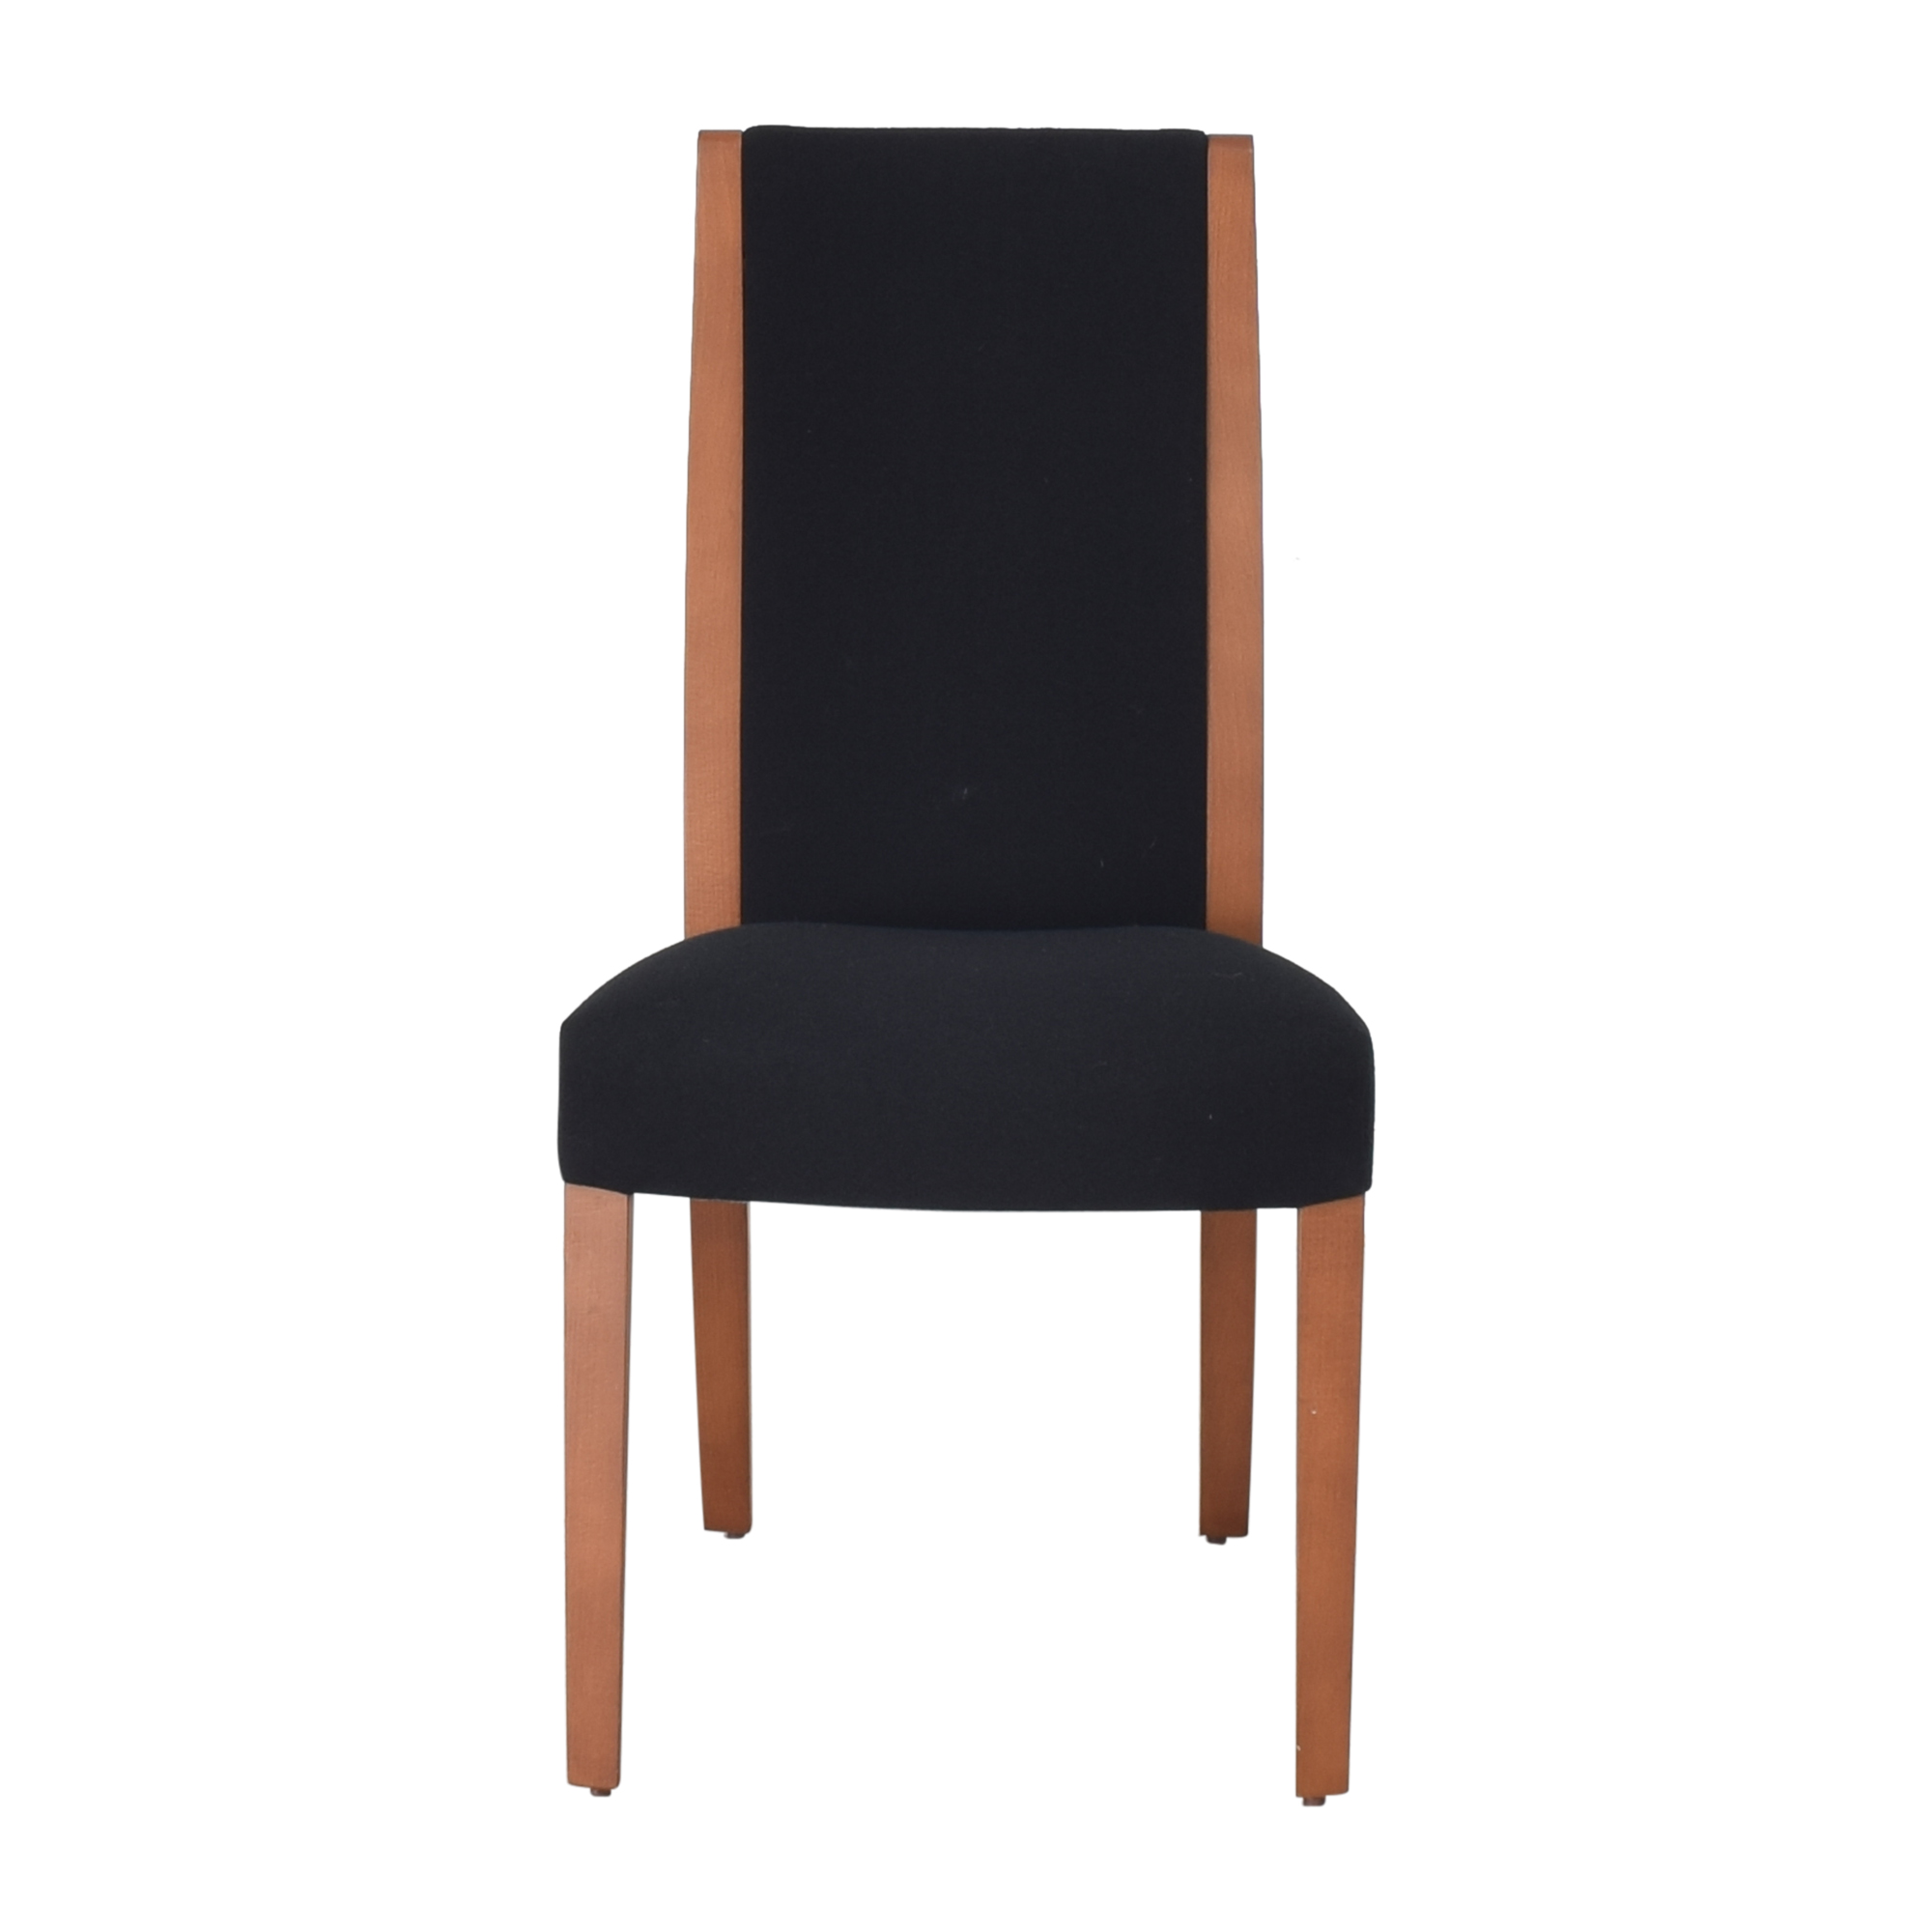 Andreu World Andreu World Upholstered Side Chair Dining Chairs